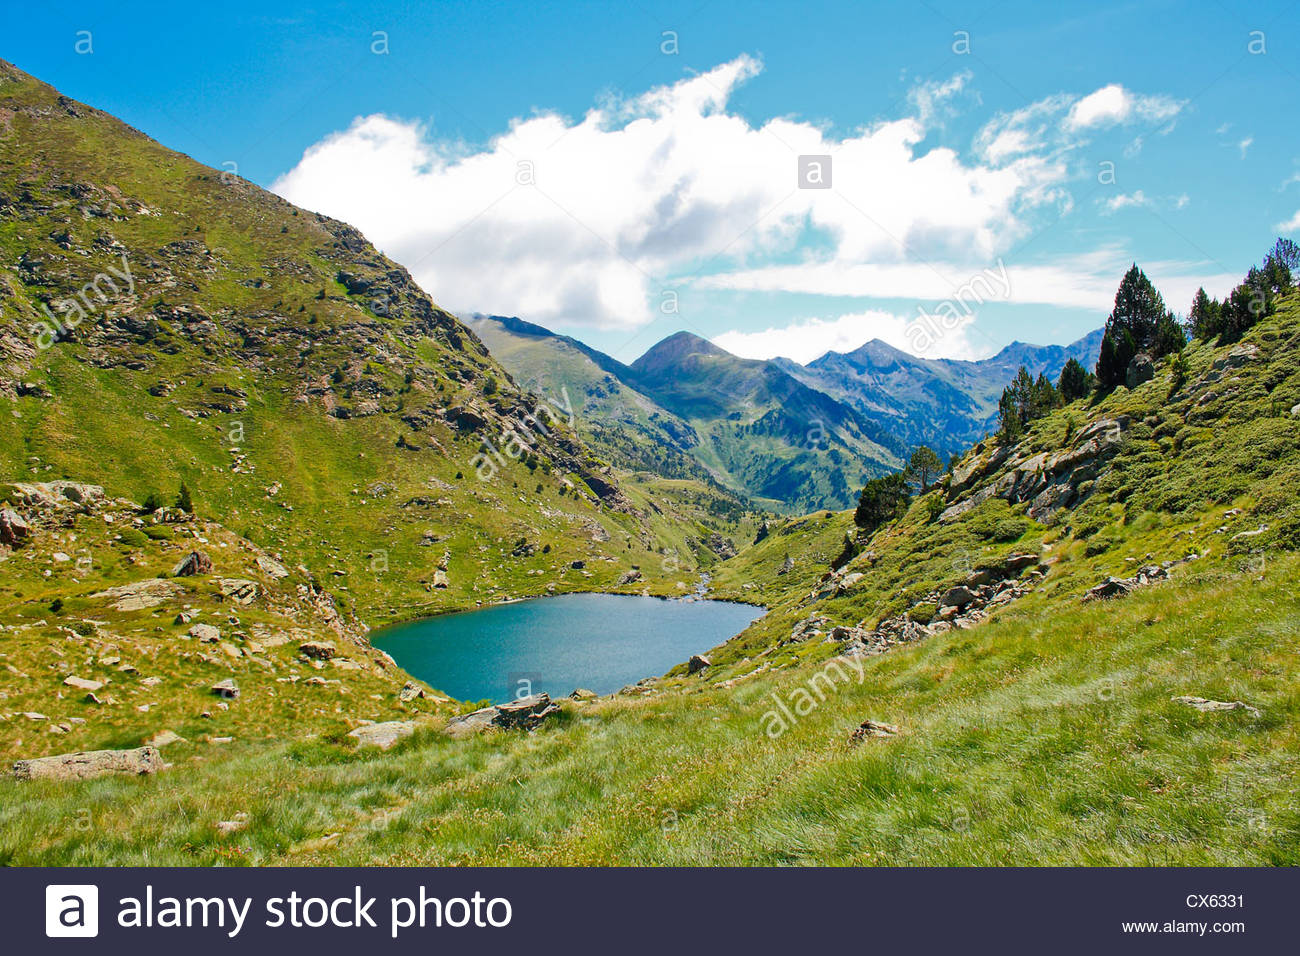 Mountain lake in Andorra, Europe. Pyrenees. - Stock Image